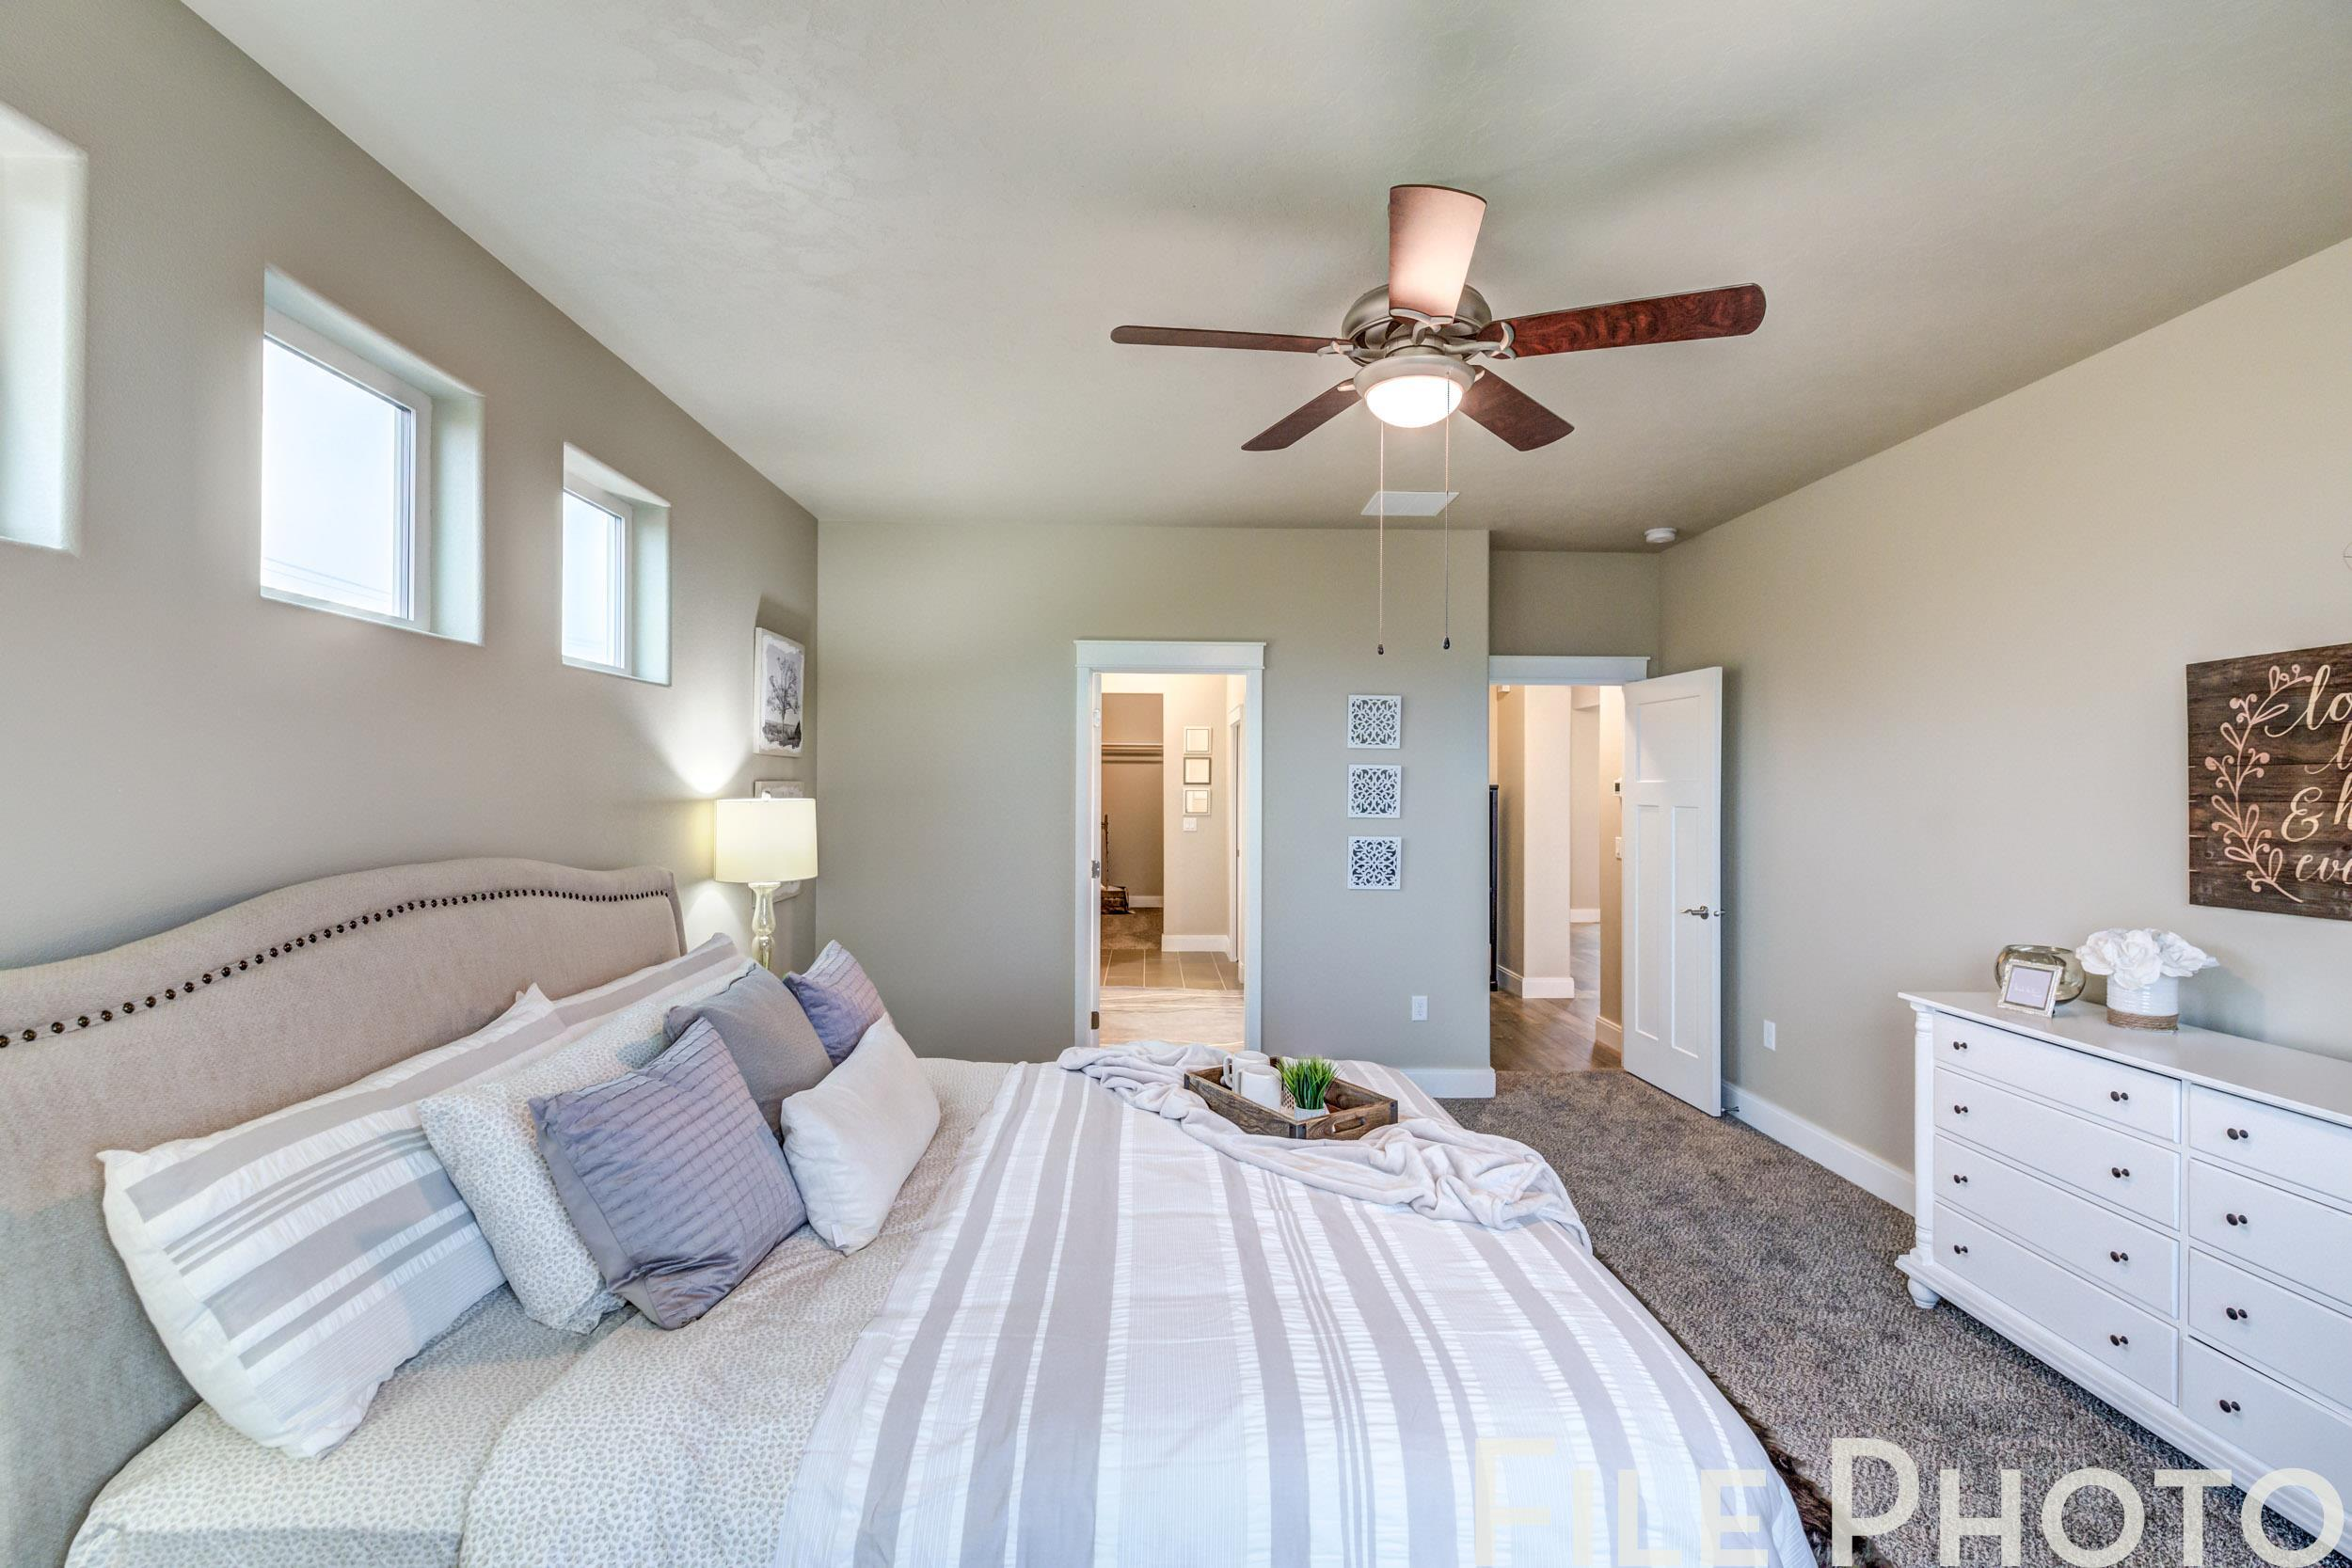 Bedroom featured in The Victoria By RYN Built Homes in Spokane-Couer d Alene, WA